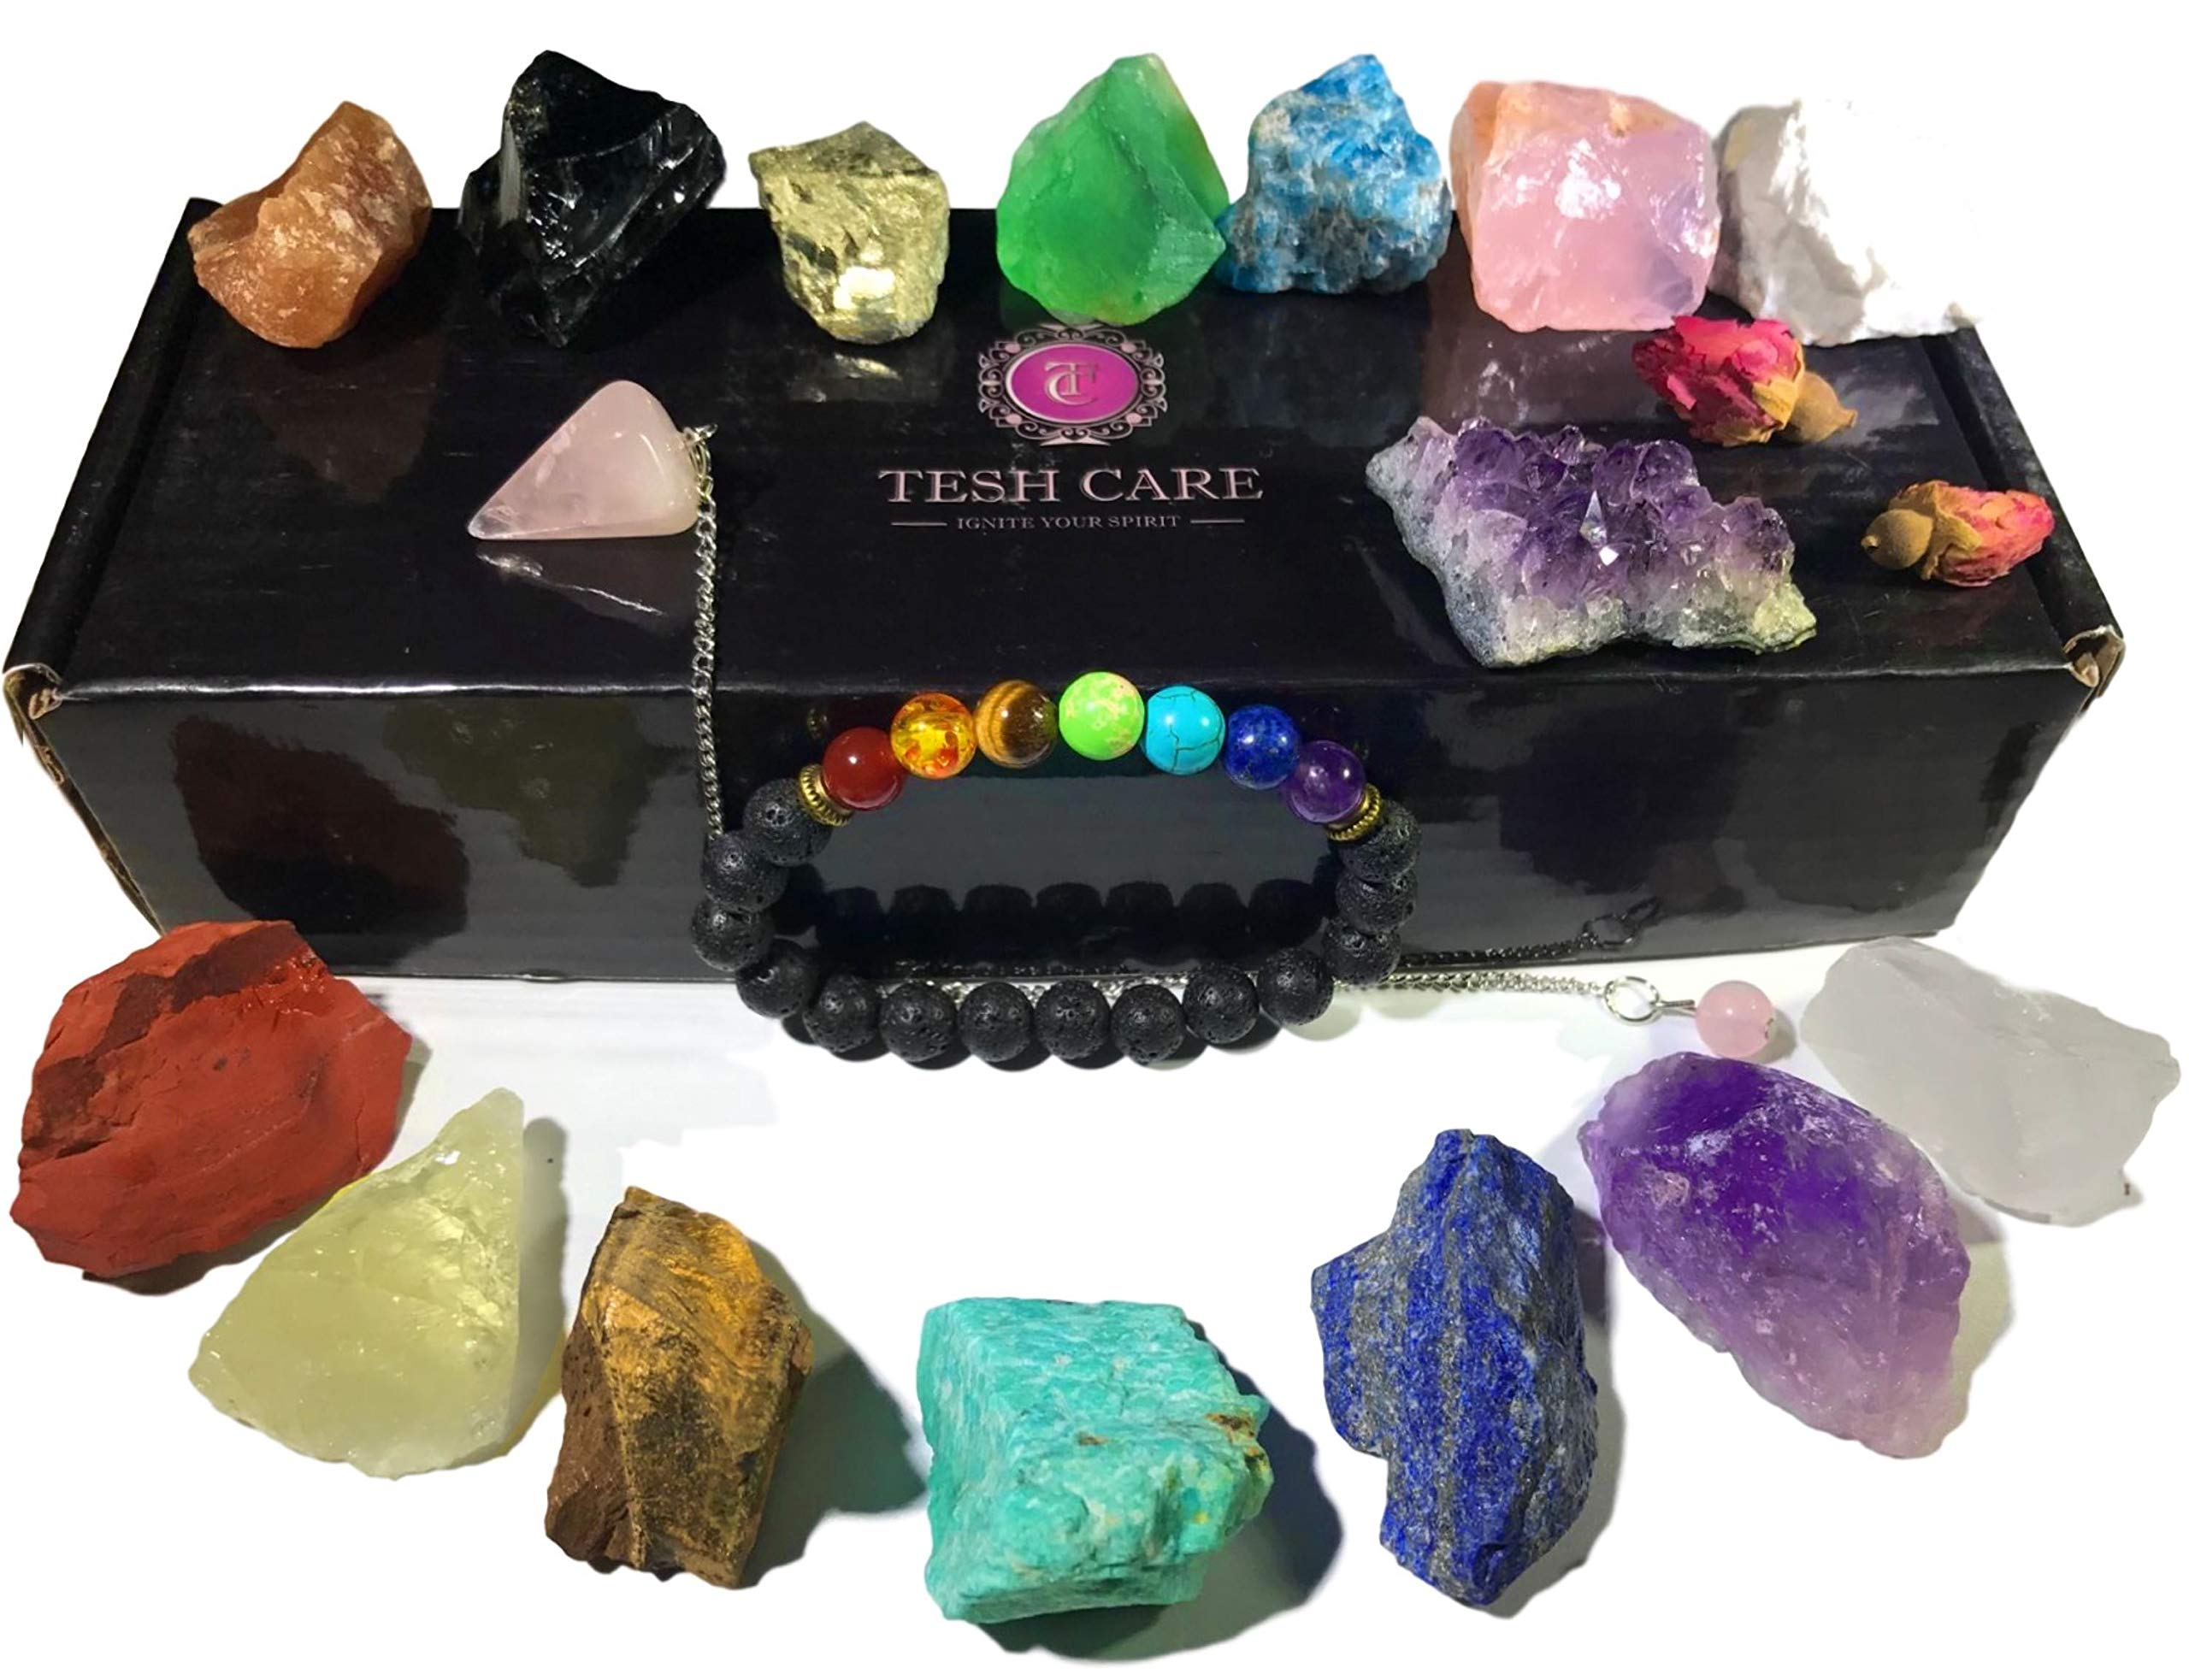 Tesh Care Chakra Therapy Starter Collection 17 pcs Healing Crystals kit, 7 Raw Chakra Stones,7 Colorful Gemstones, Amethyst,Rose Quartz Pendulum,Chakra Lava Bracelet,Dry Roses,Guide,COA,Gift Ready